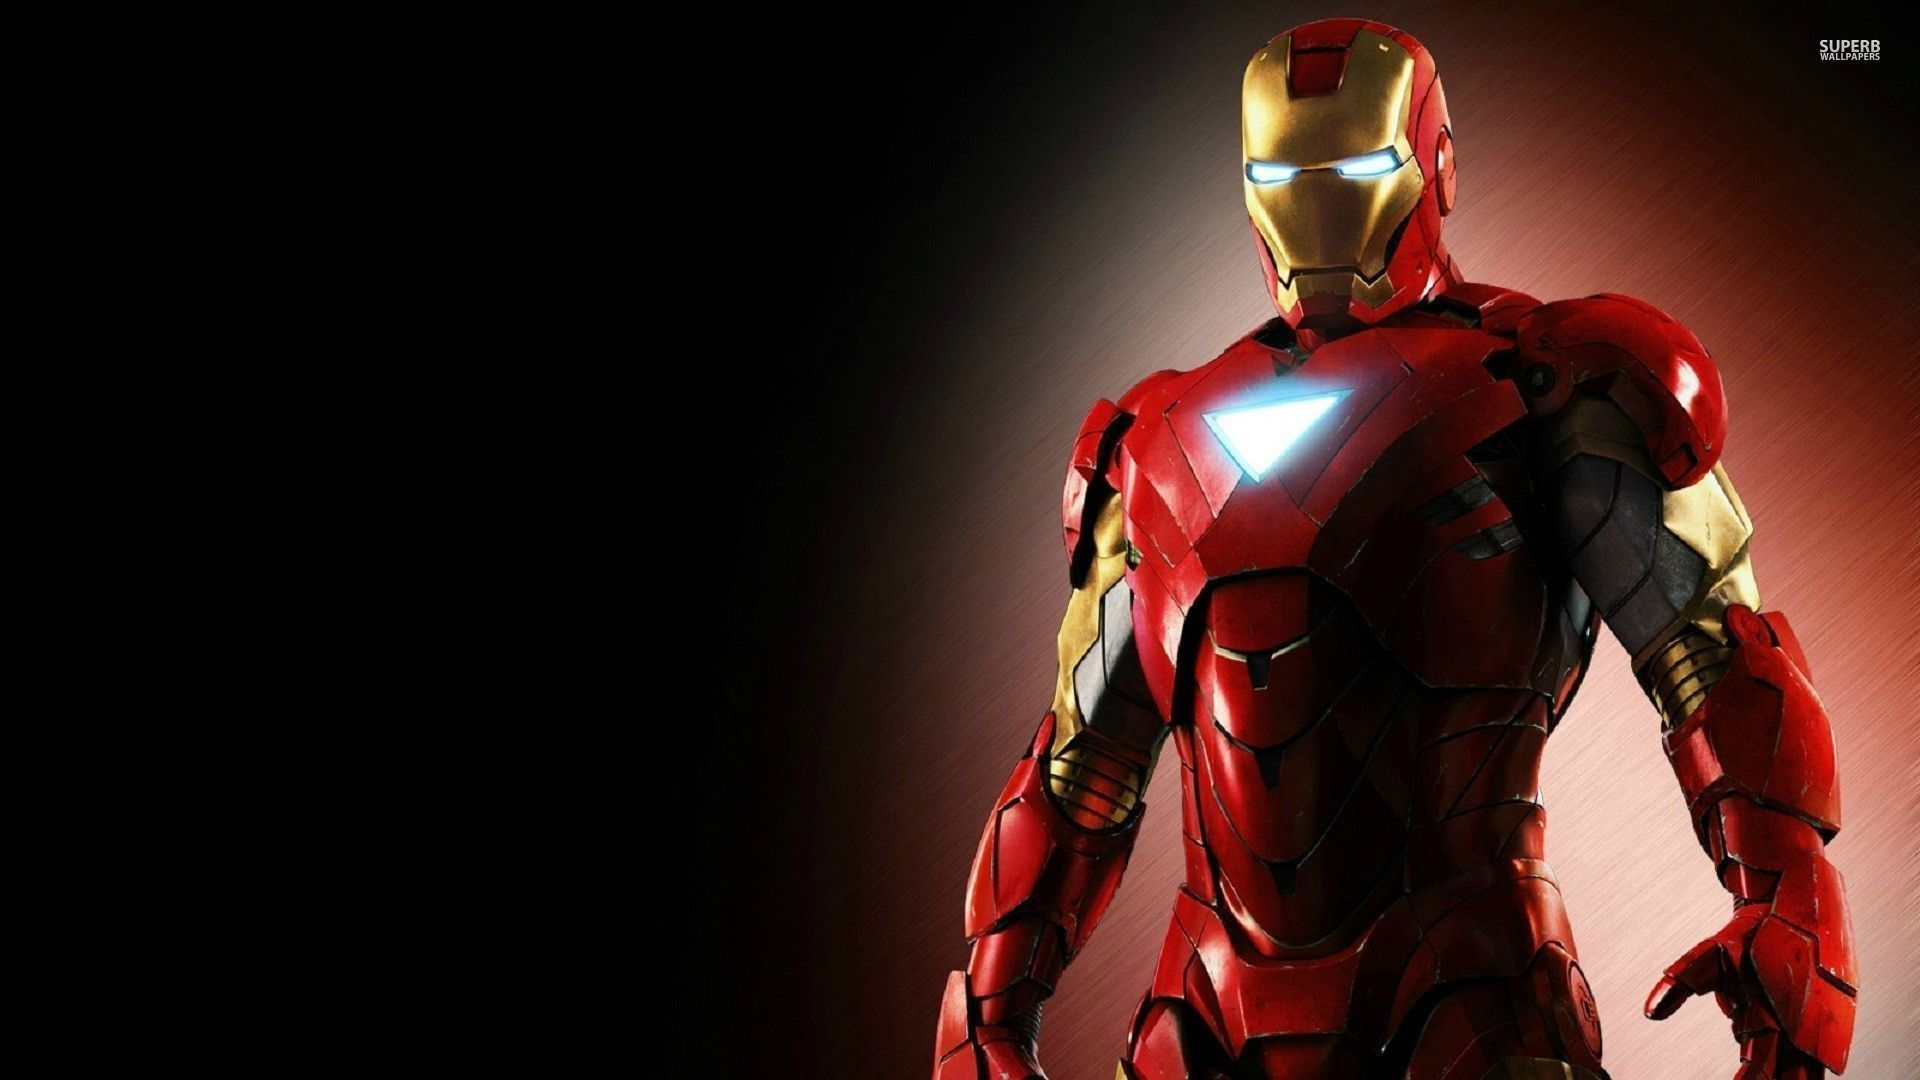 iron man hd images